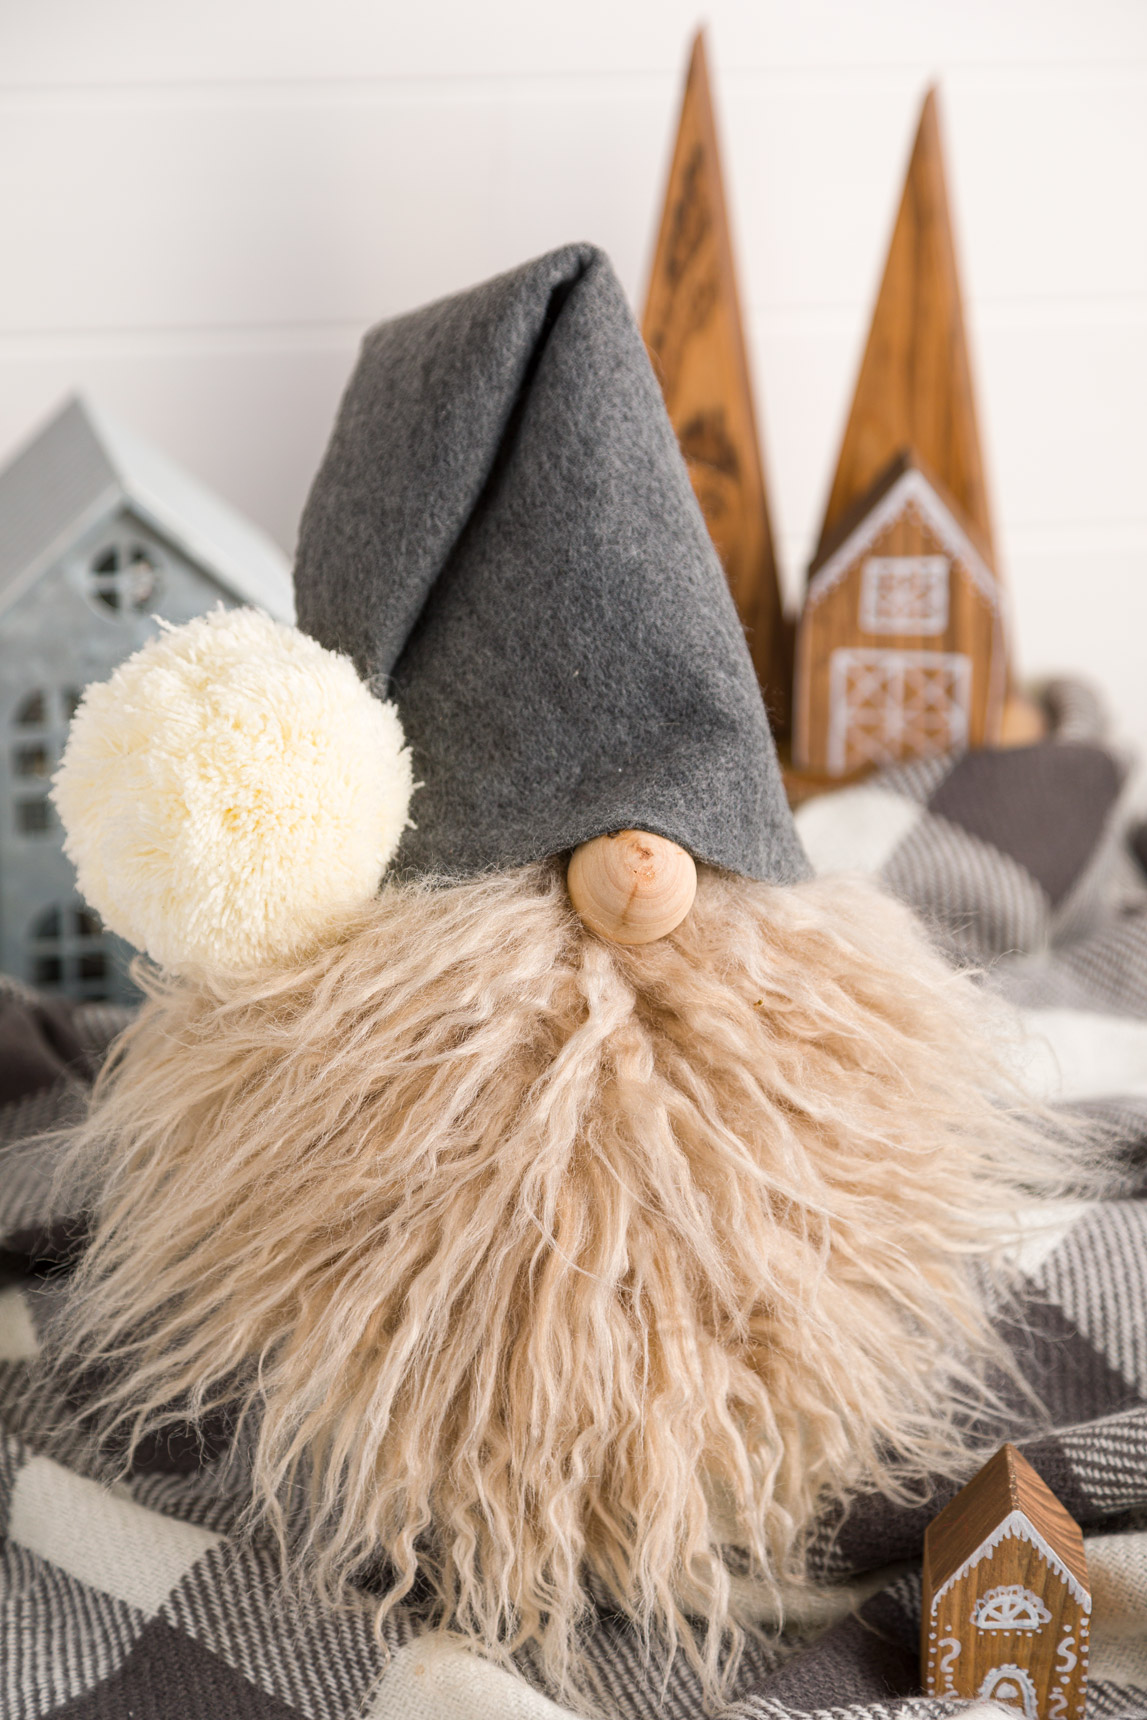 DIY Gnome with a faux fur beard and gray felt hat. Sitting on a gray and while buffalo check throw blanket.